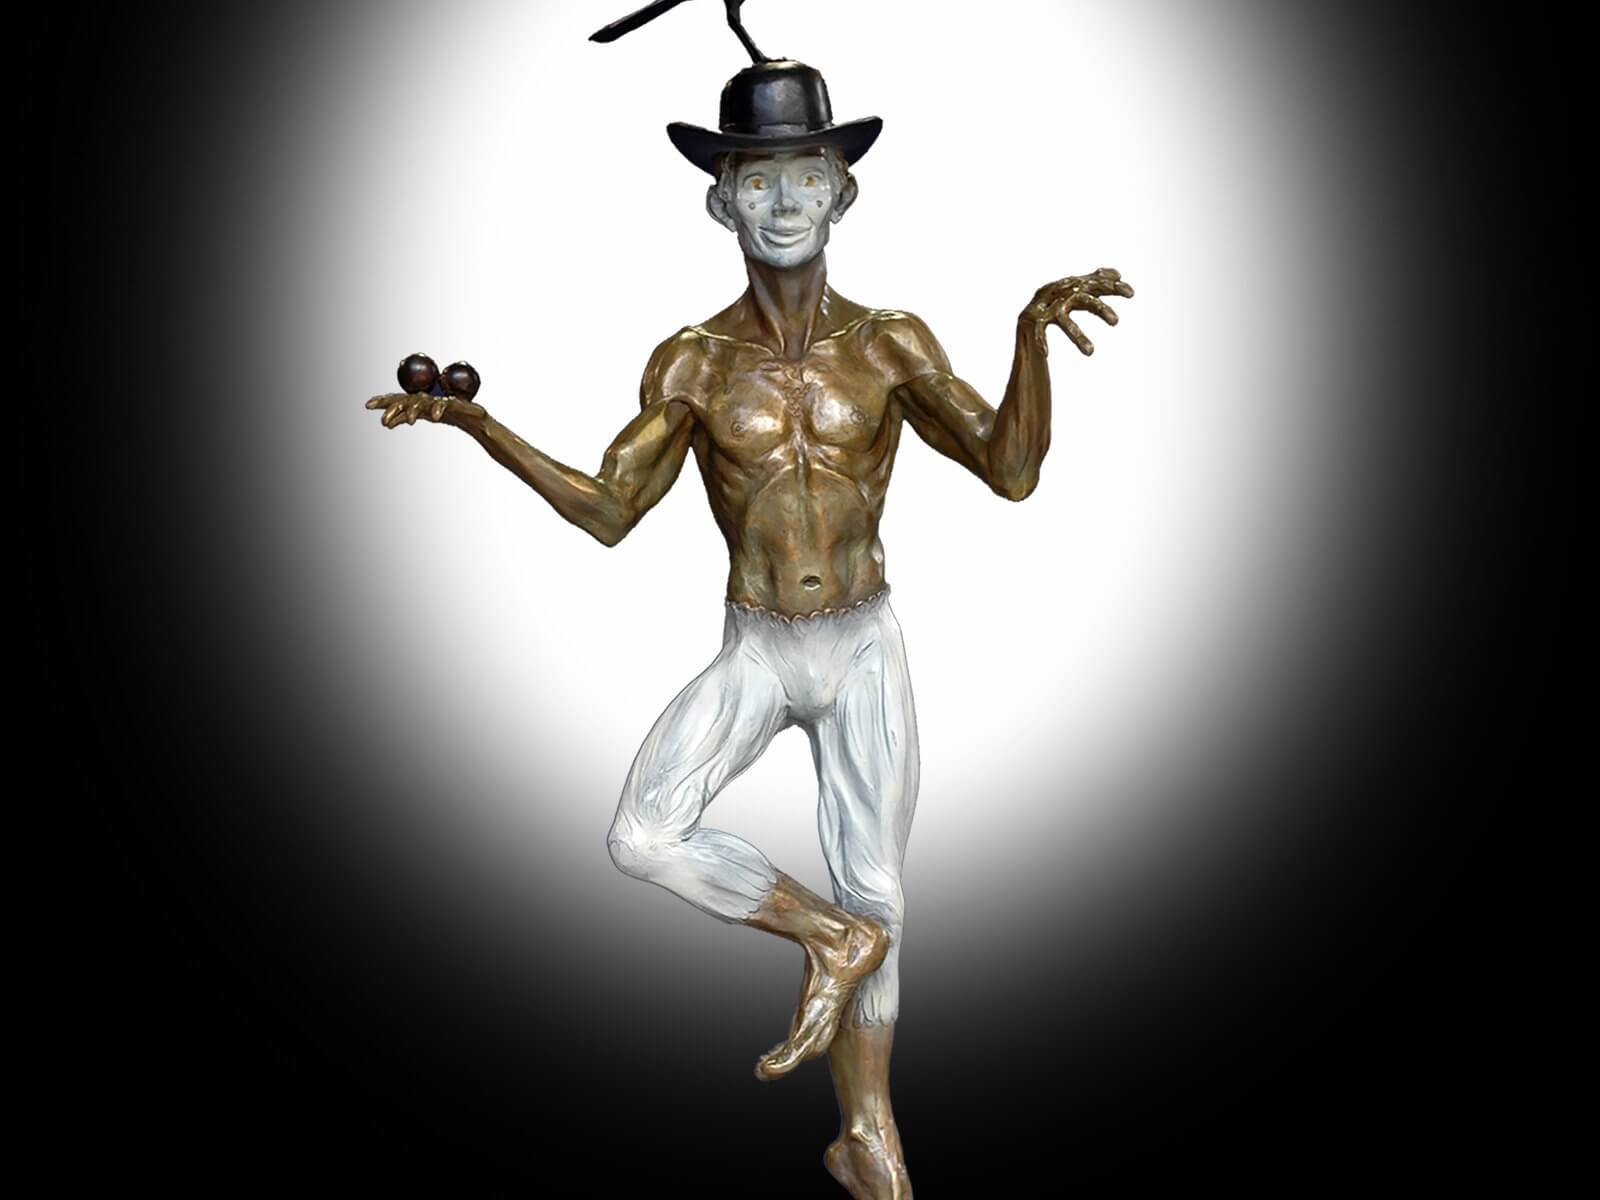 The Juggler, a bronze juggling mime sculpture by Andrew DeVries, copyright 2004.